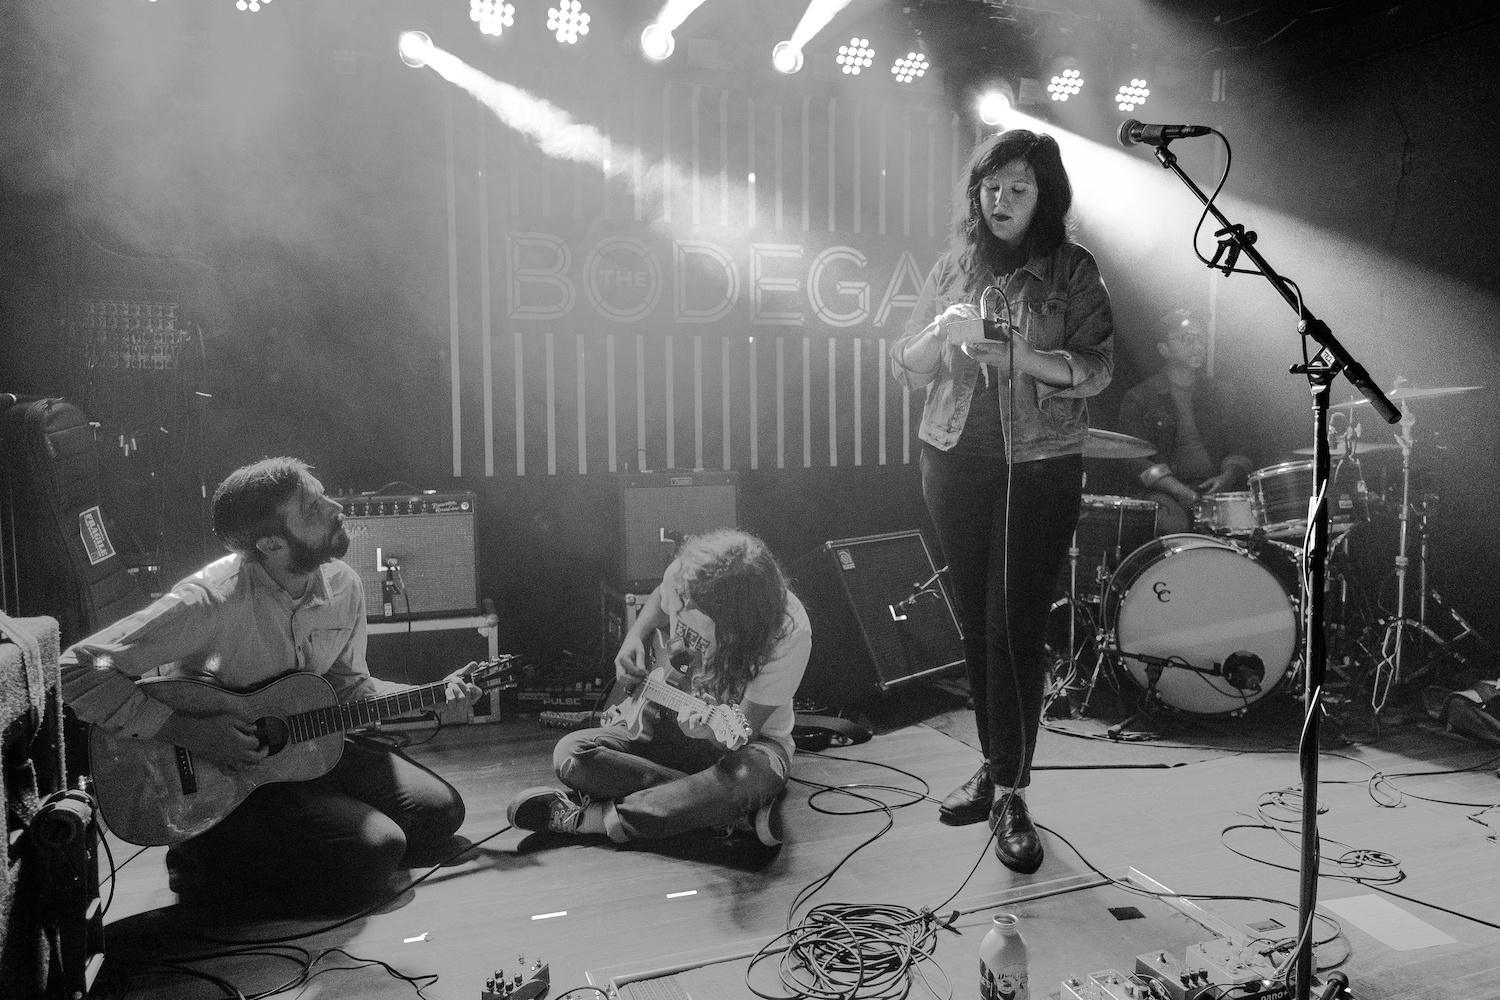 LeftLion - Live Music Review: Lucy Dacus at The Bodega